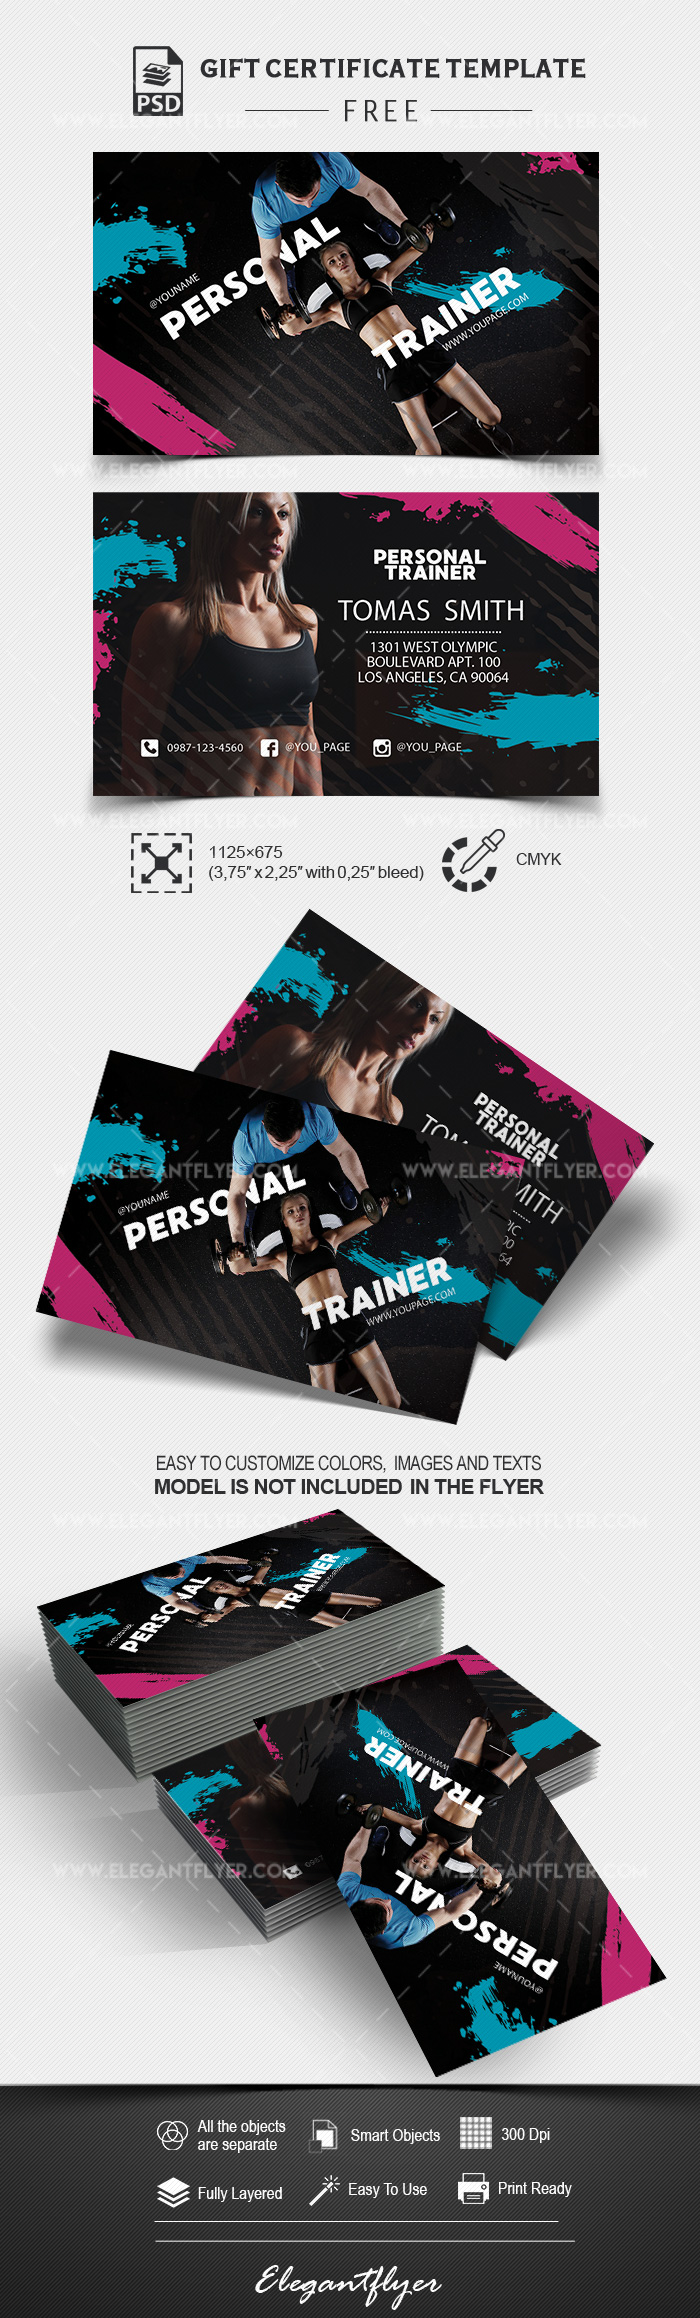 Personal Trainer – Free PSD Business Card Template